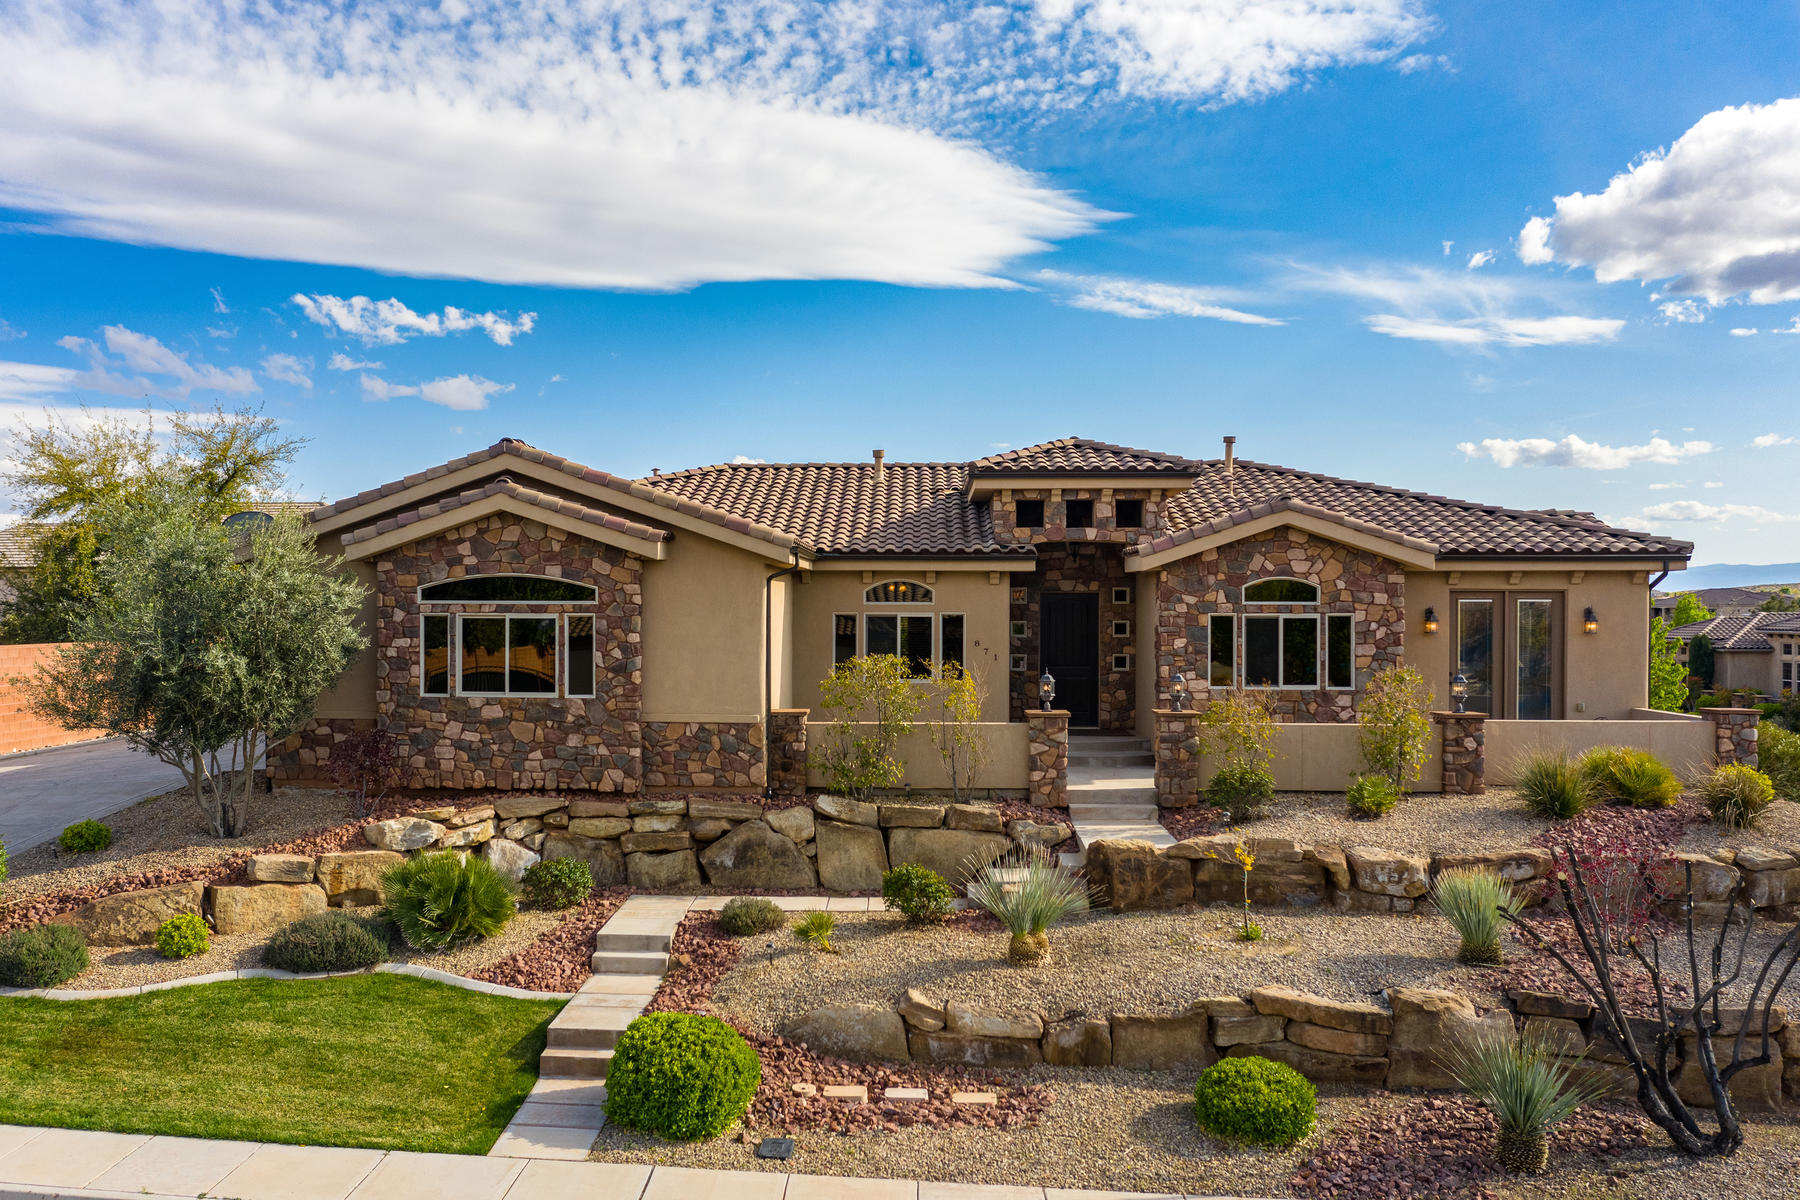 Single Family Homes for Sale at Elegant & Captivating Living, Inside & Out 871 W Essex Street Washington, Utah 84780 United States